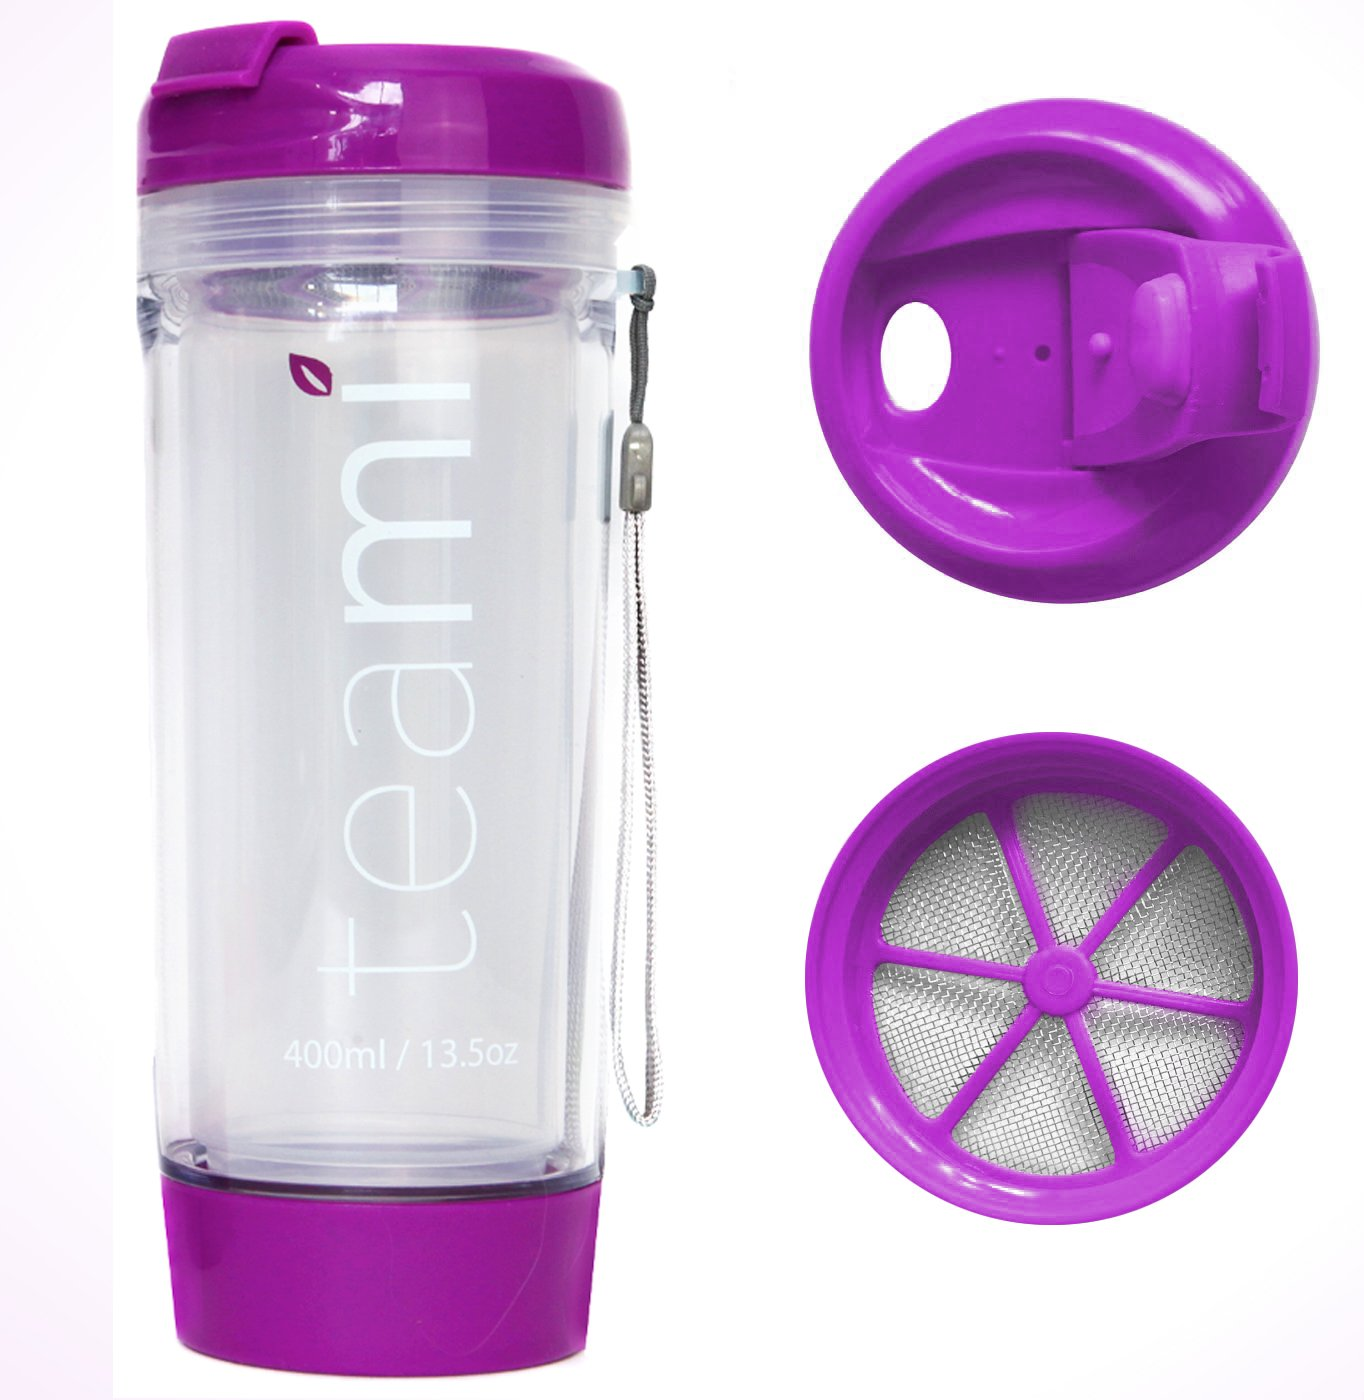 FRUIT INFUSER Water Bottle Tumbler with a Lid | 100% BPA FREE | Our Best Infusion Bottles for Infused Fruit, Smoothies, Tea, and Coffee | Double Walled Mug, Hot & Cold (13.5 Ounces, Purple)